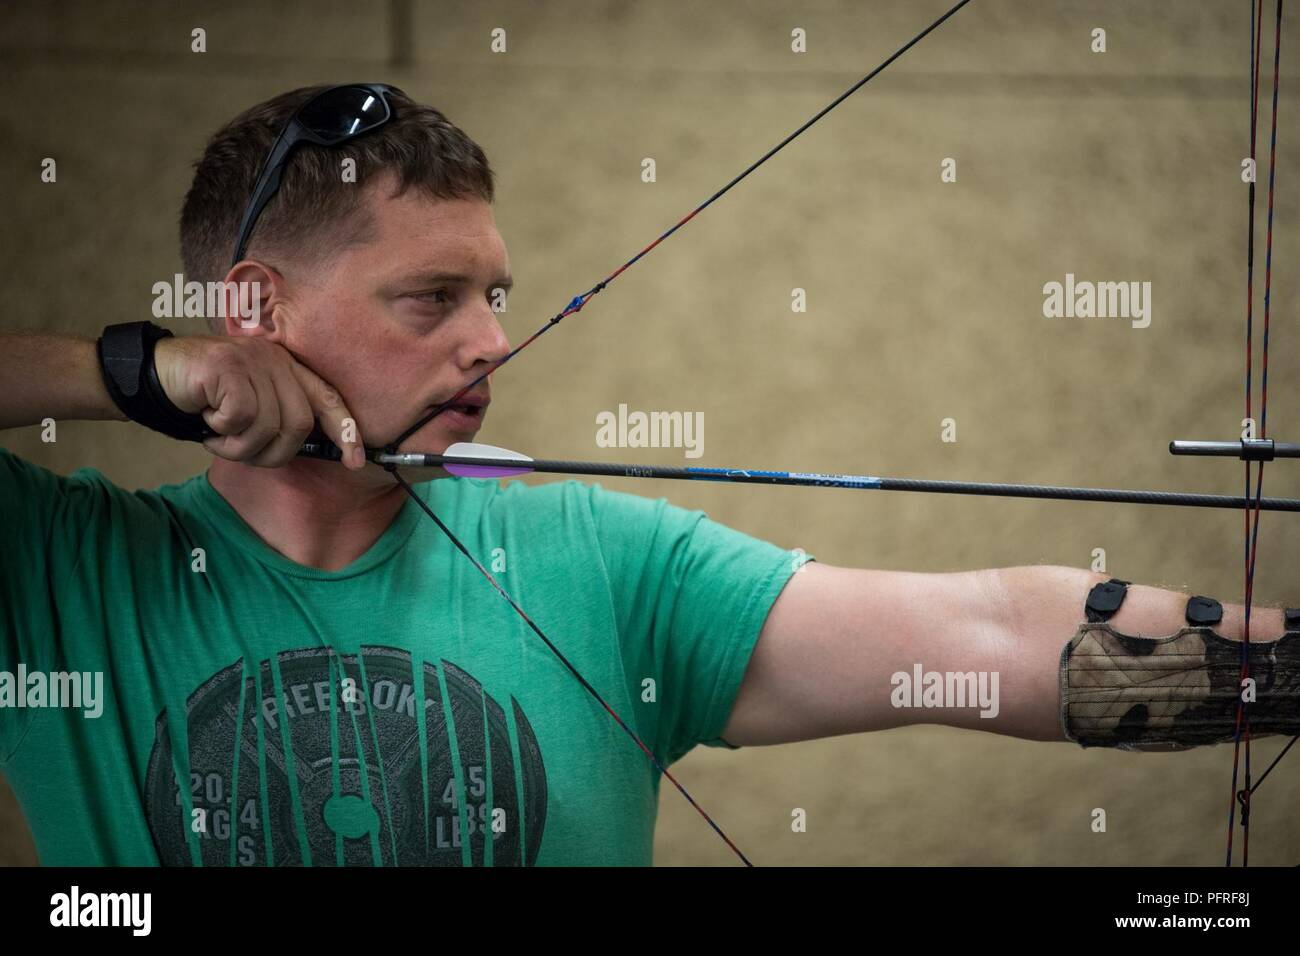 9968a92d74 U.S. Marine Corps Sgt. Mark Monroe aims downrange during a 2018 DoD Warrior  Games archery